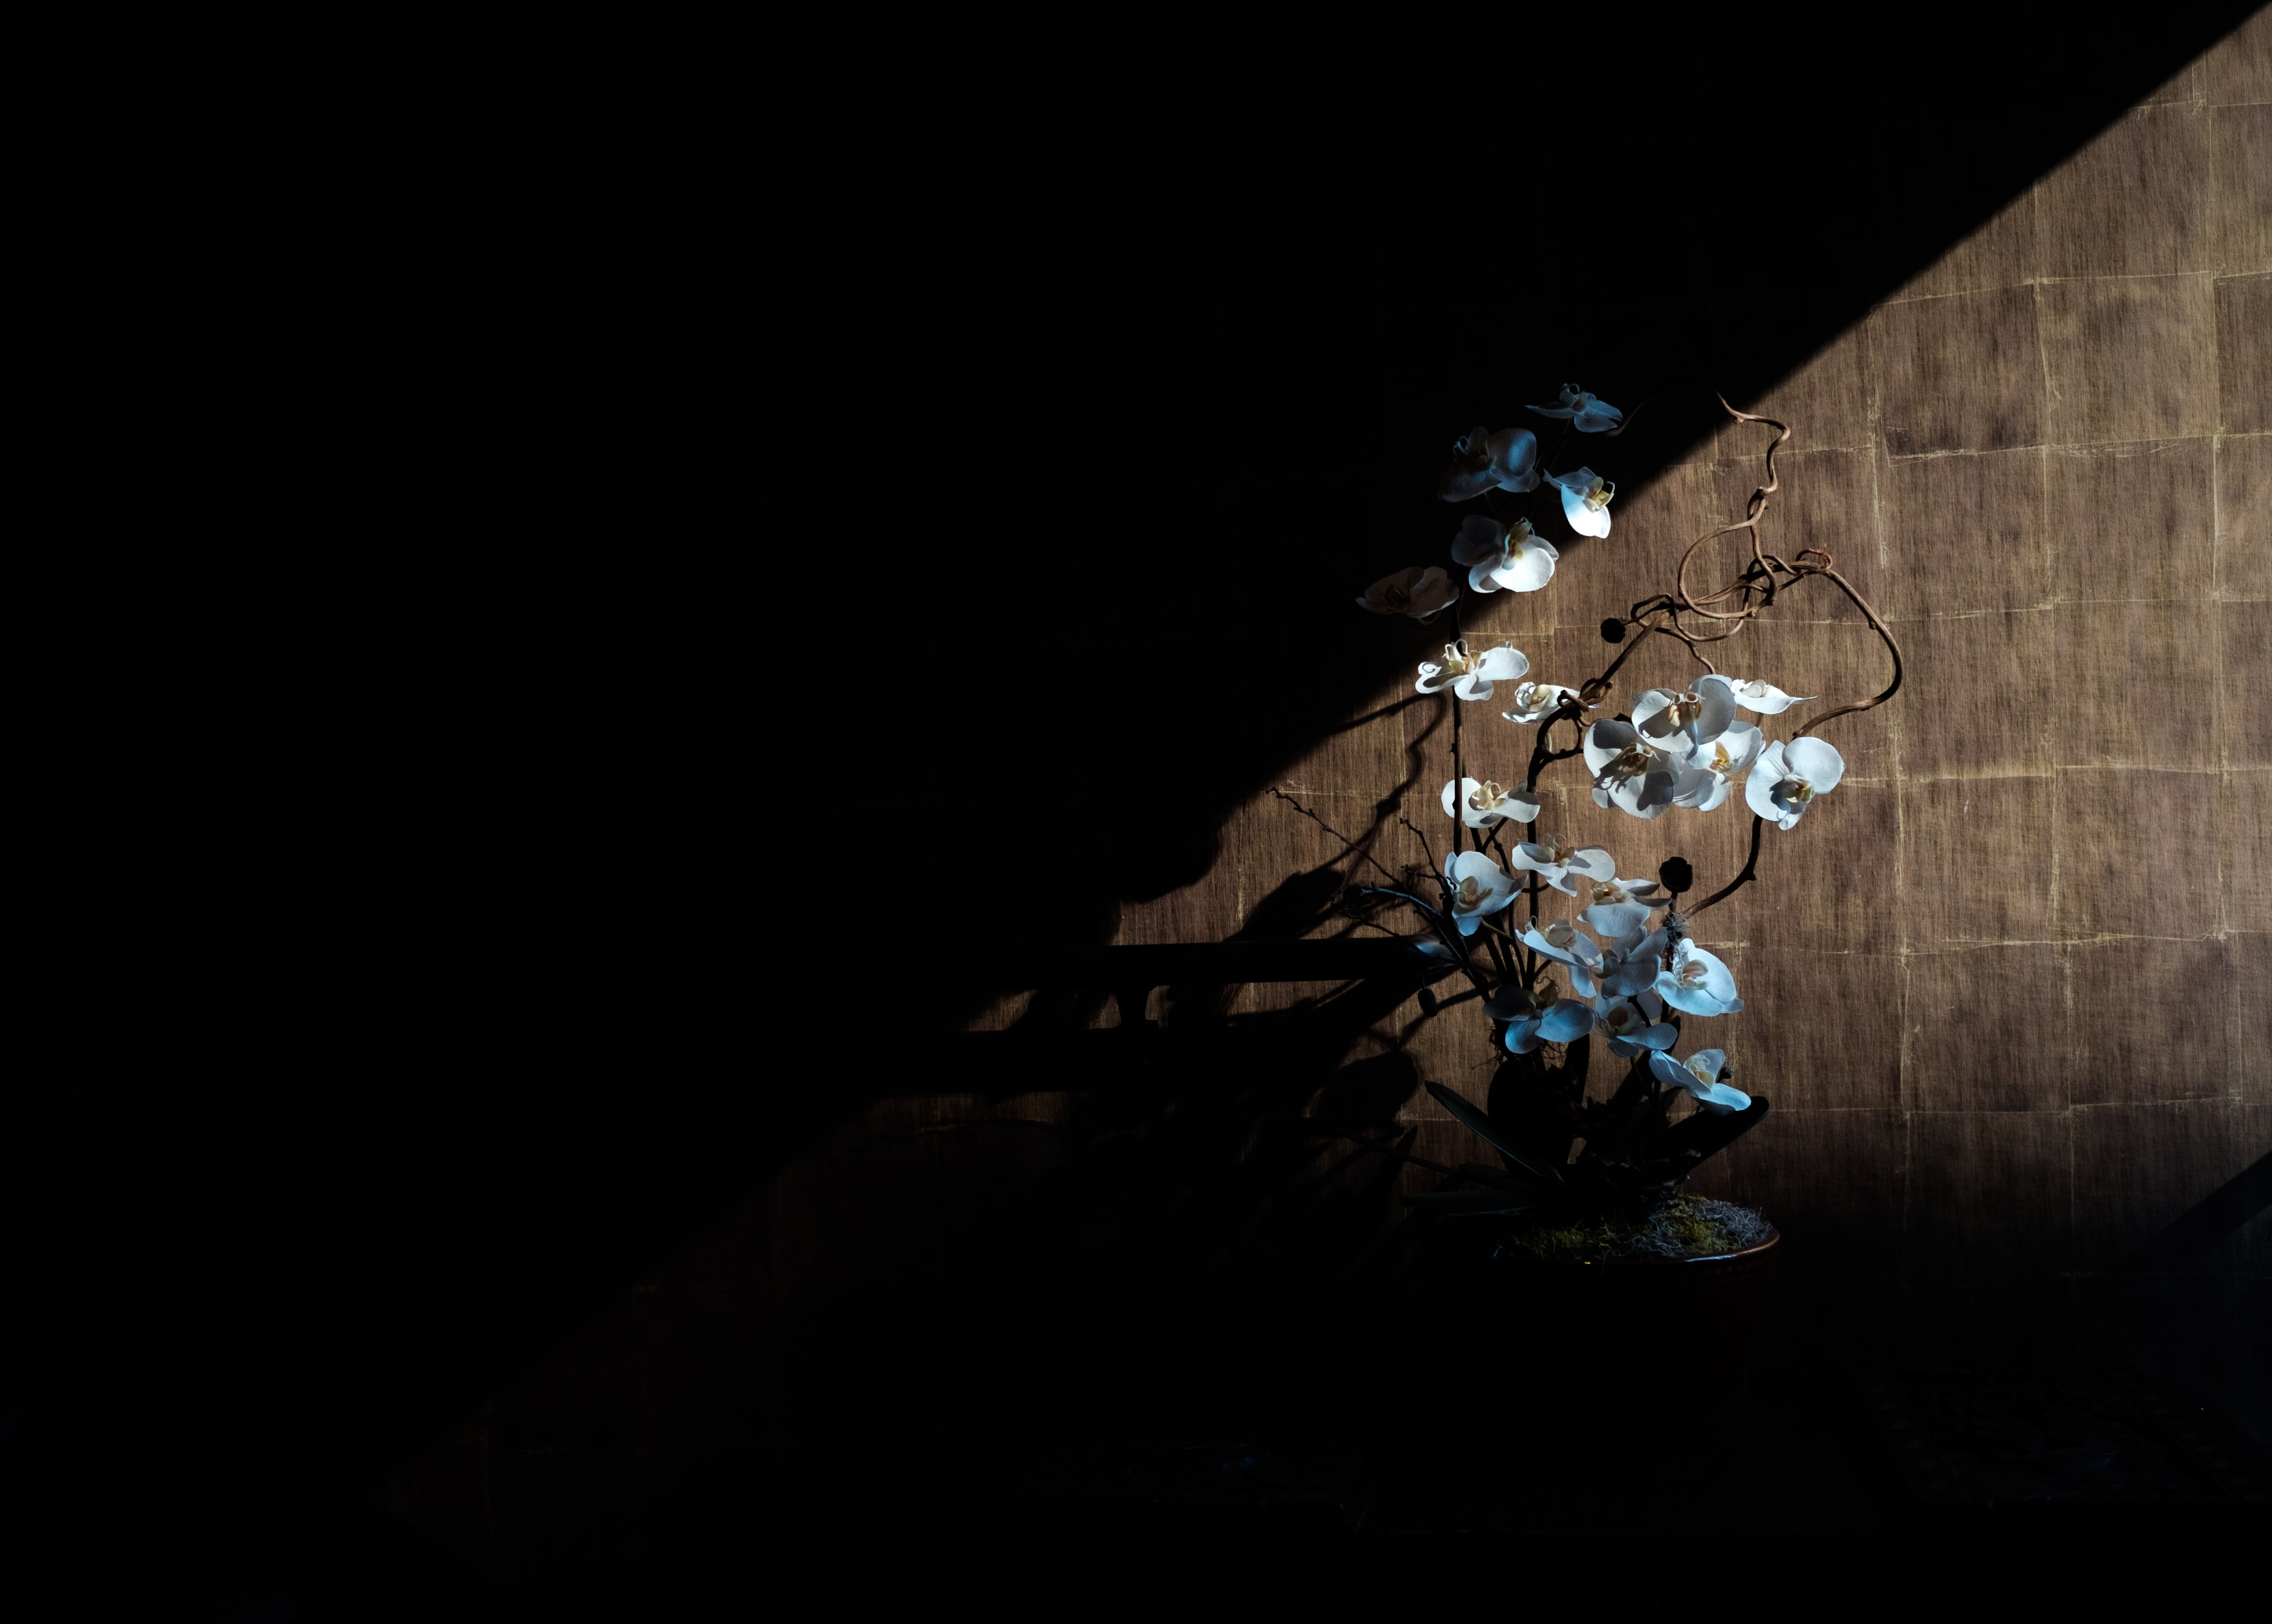 A dim shot of white orchid flowers in a pot illuminated by sunlight from the window